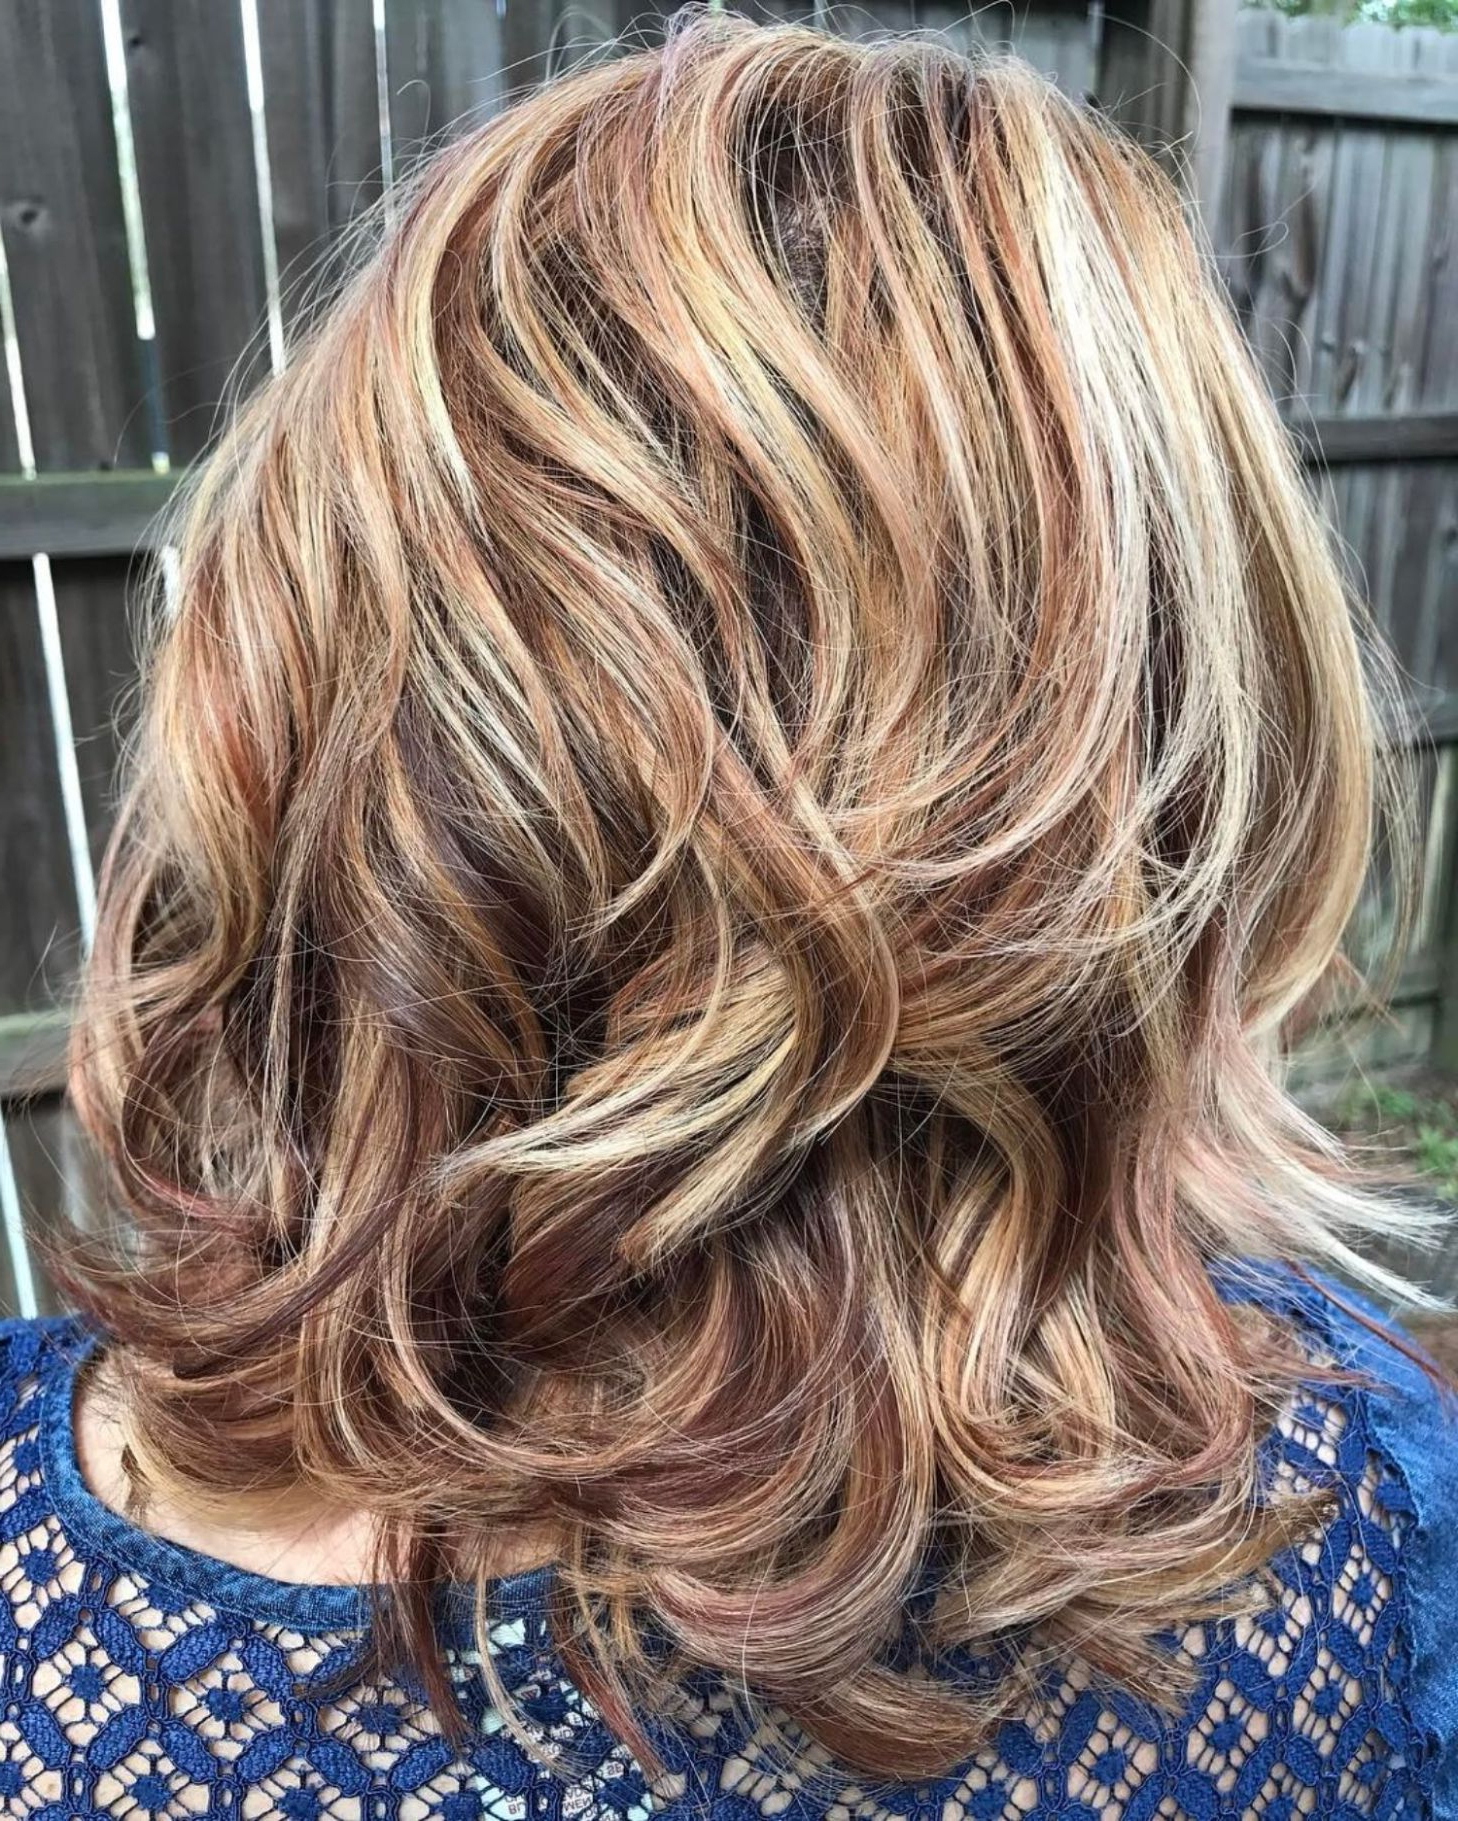 60 Most Magnetizing Hairstyles For Thick Wavy Hair (View 11 of 20)